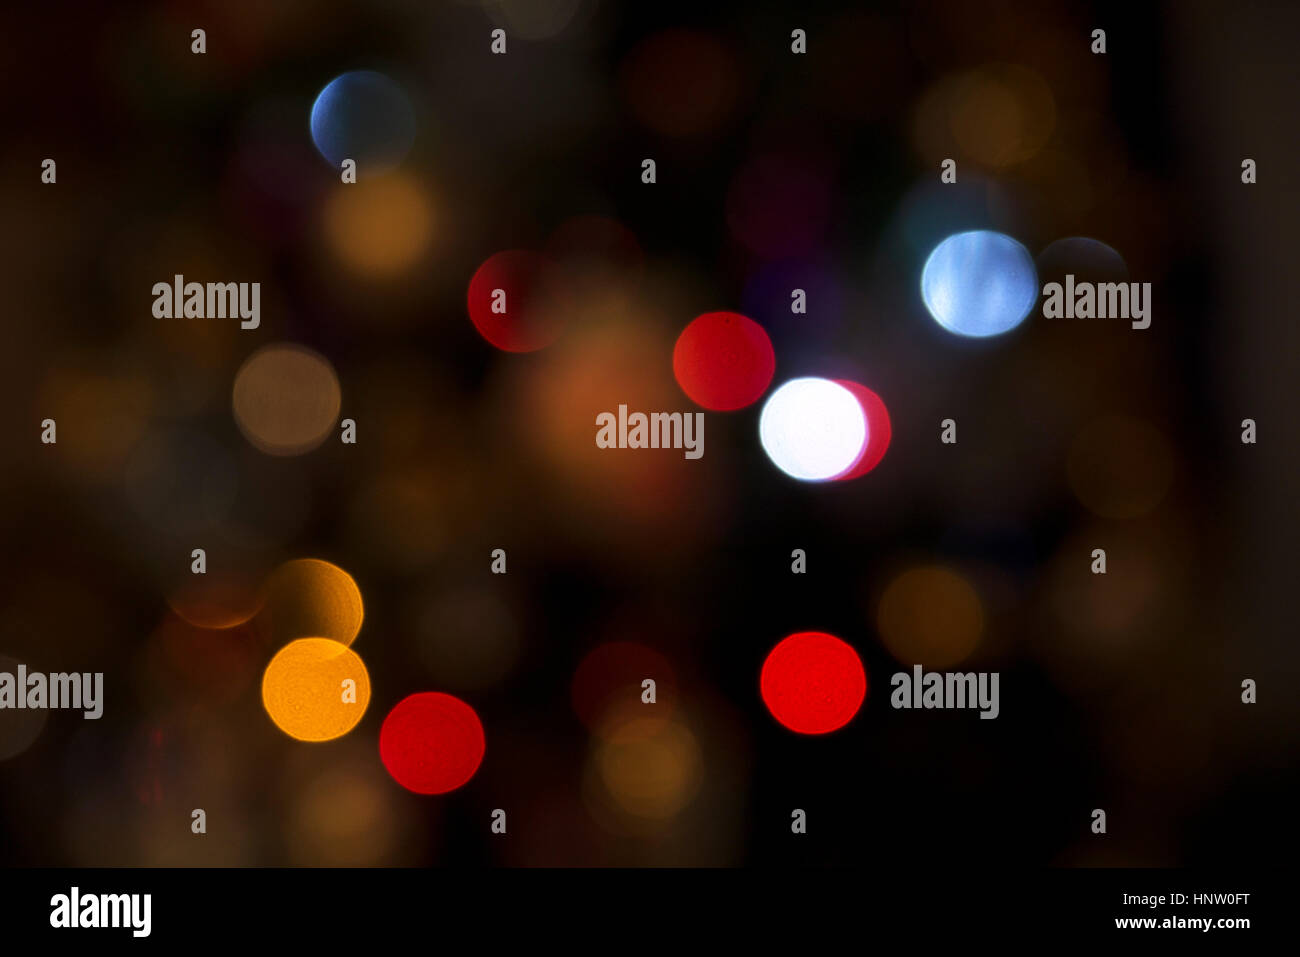 abstruct unfocused red orange blue green and yellow circle lights - Stock Image